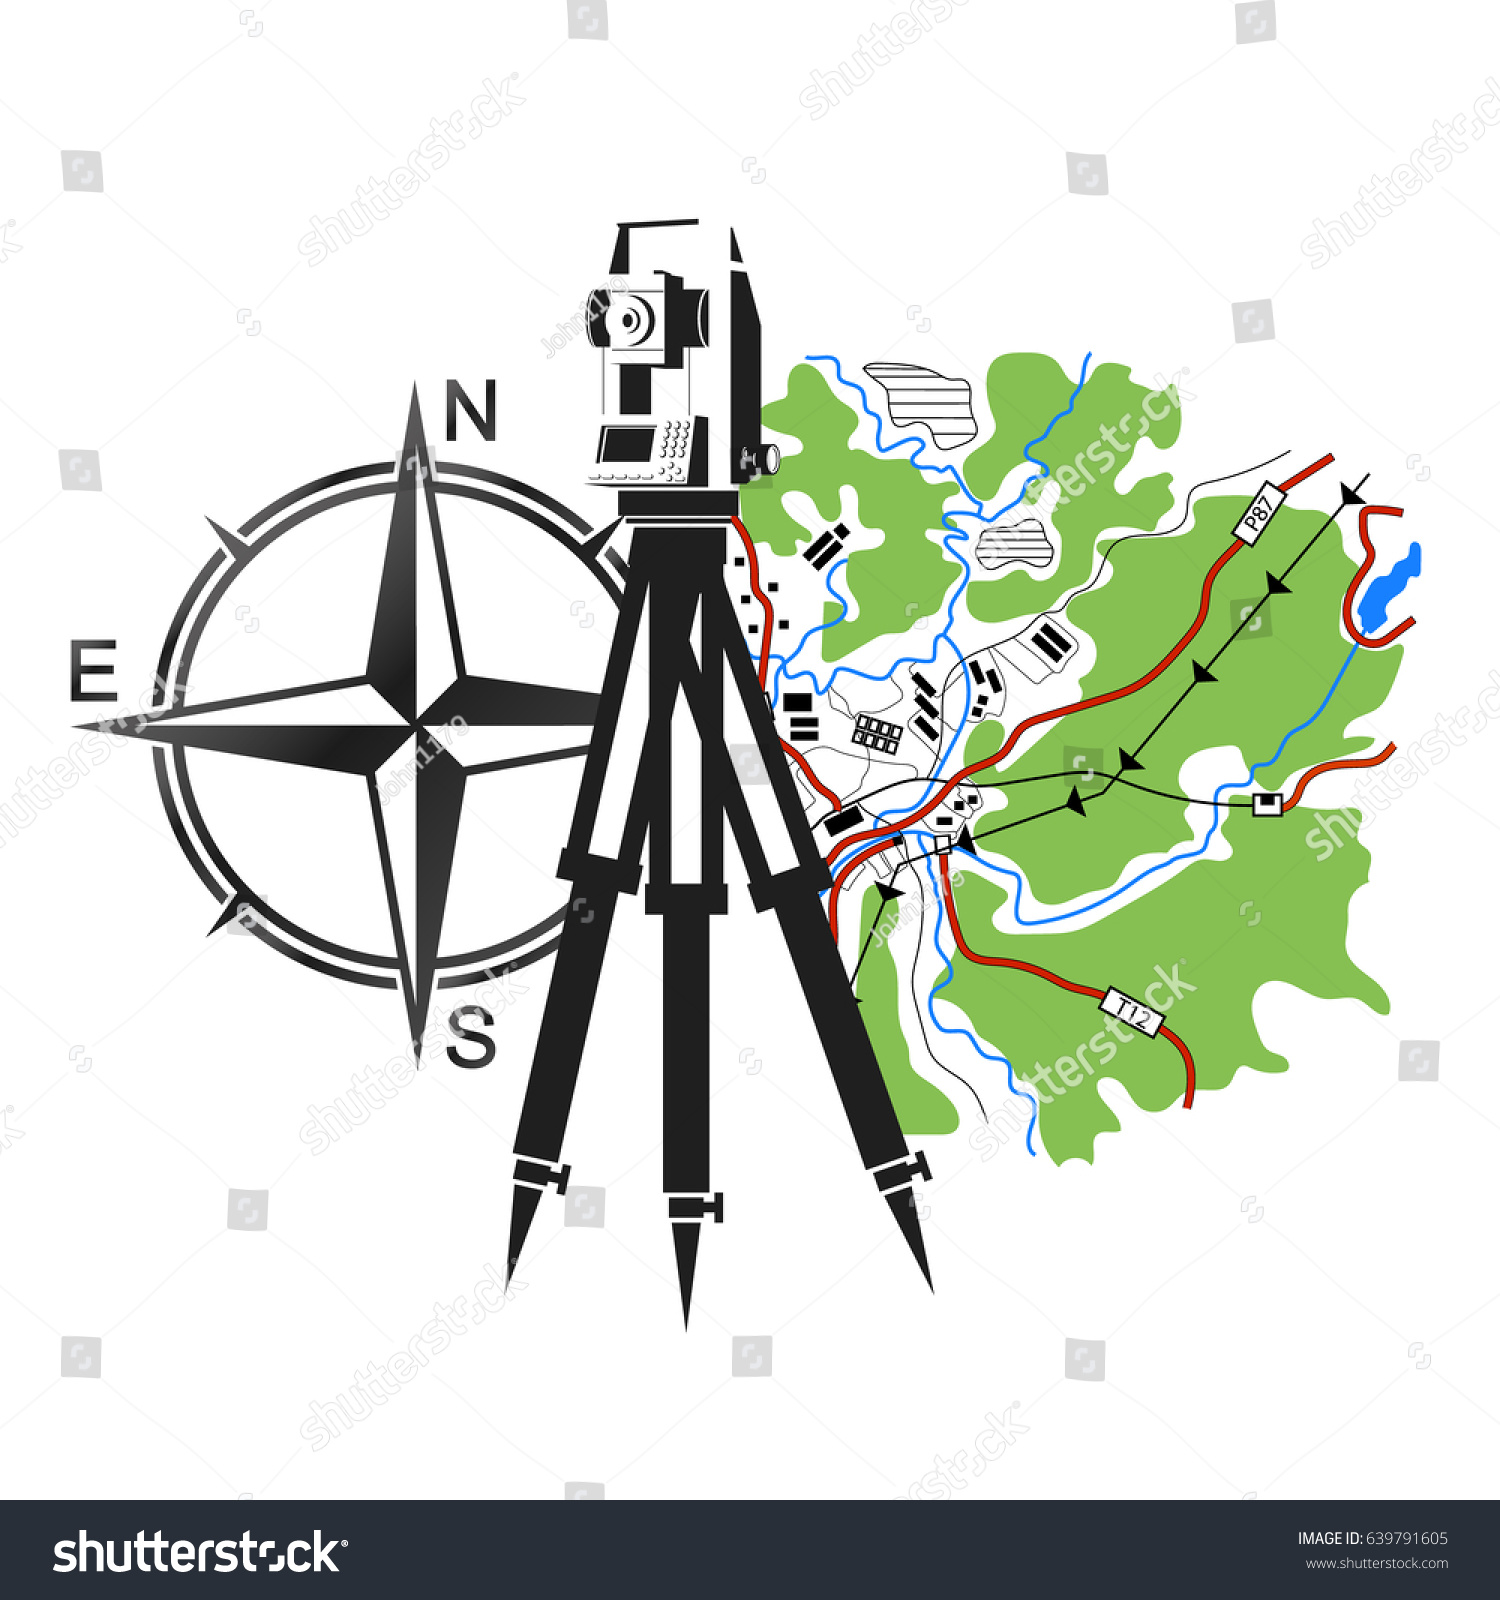 Geodesy - what kind of science is this Geodesy and cartography